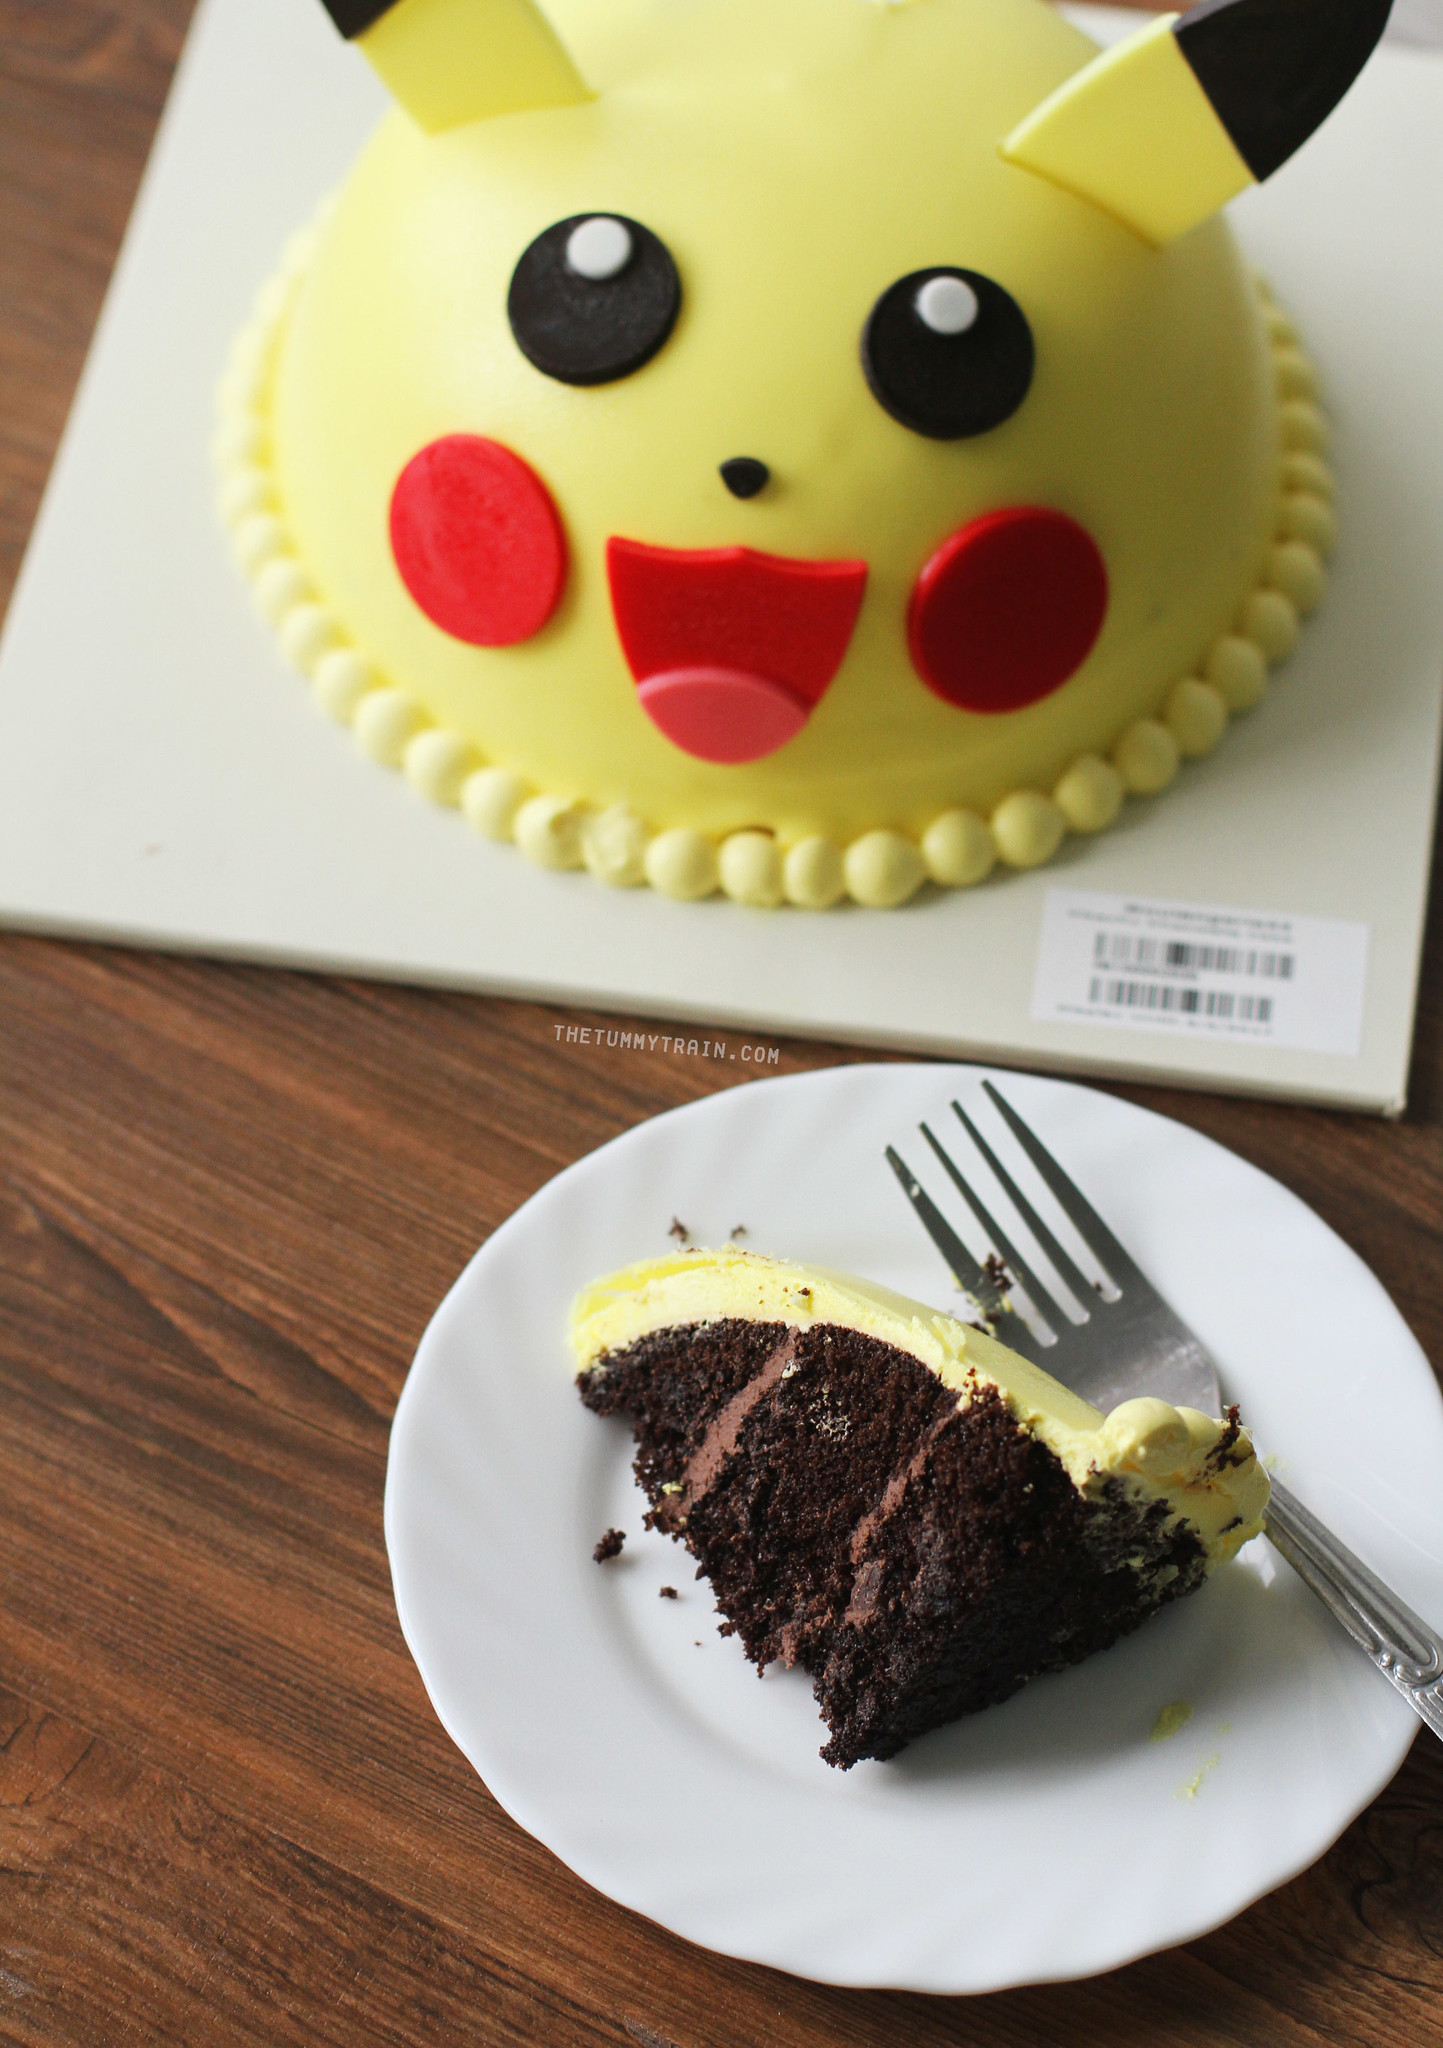 33177227941 95c5ec4cde k - Fuel your Pokemon Go craze with Boulangerie22 Pokemon Cakes